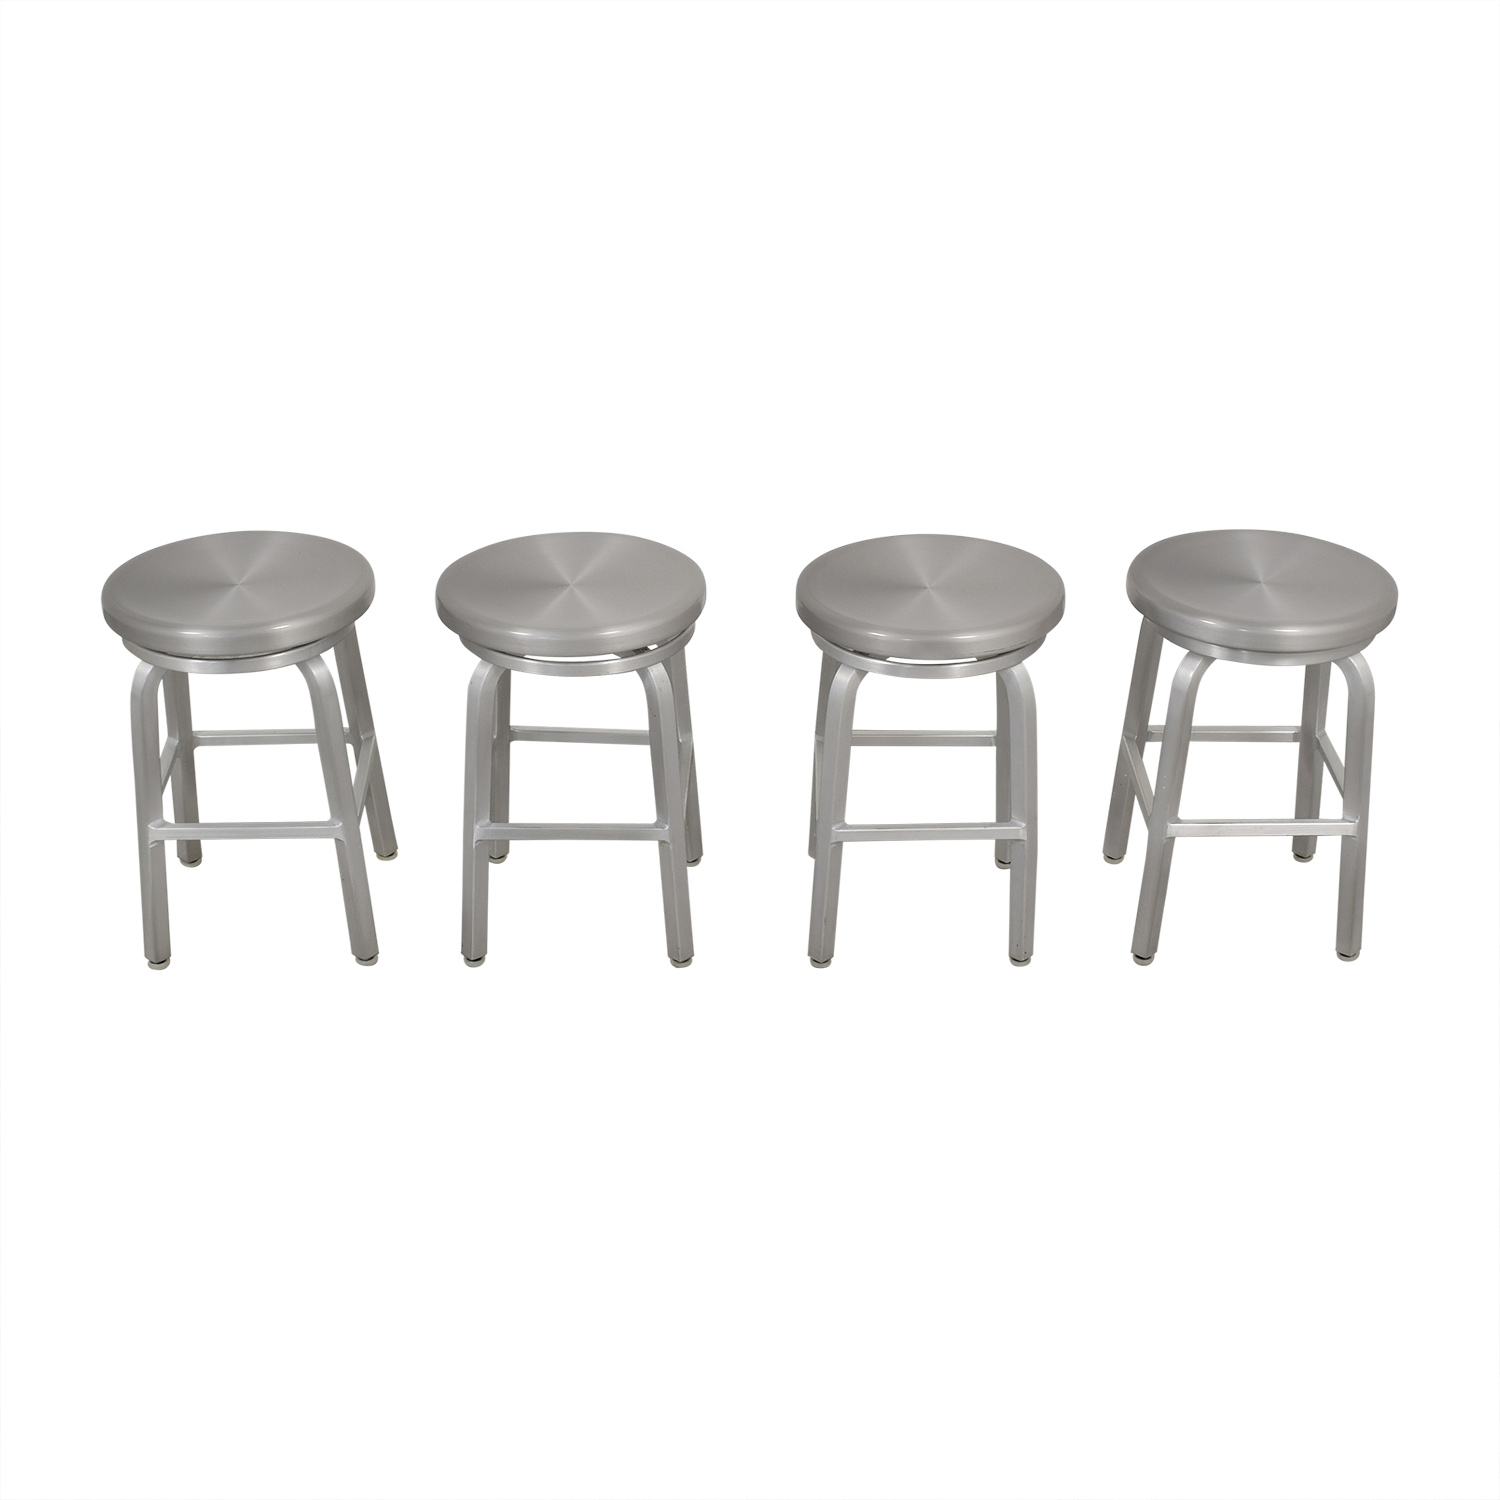 Crate & Barrel Crate & Barrel Spin Swivel Backless Counter Stool silver